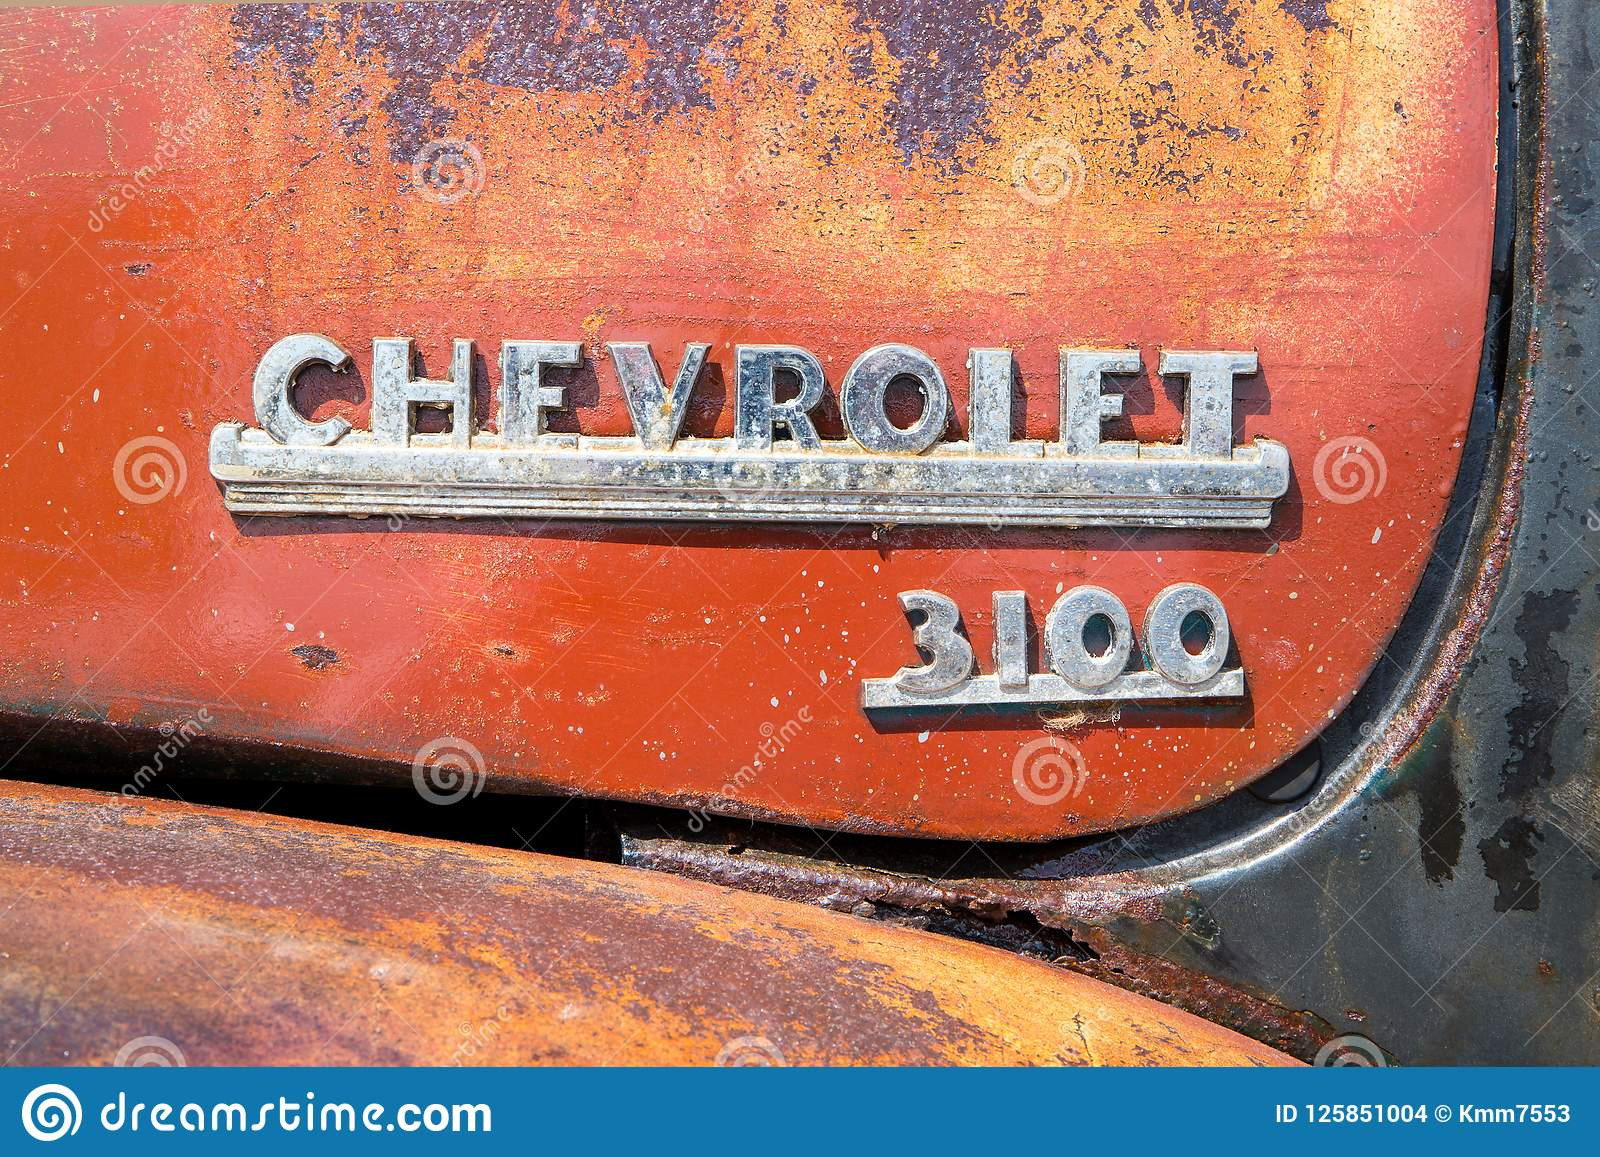 1949 Chevy 3100 Pickup Truck Editorial Stock Image Of Download Automobile